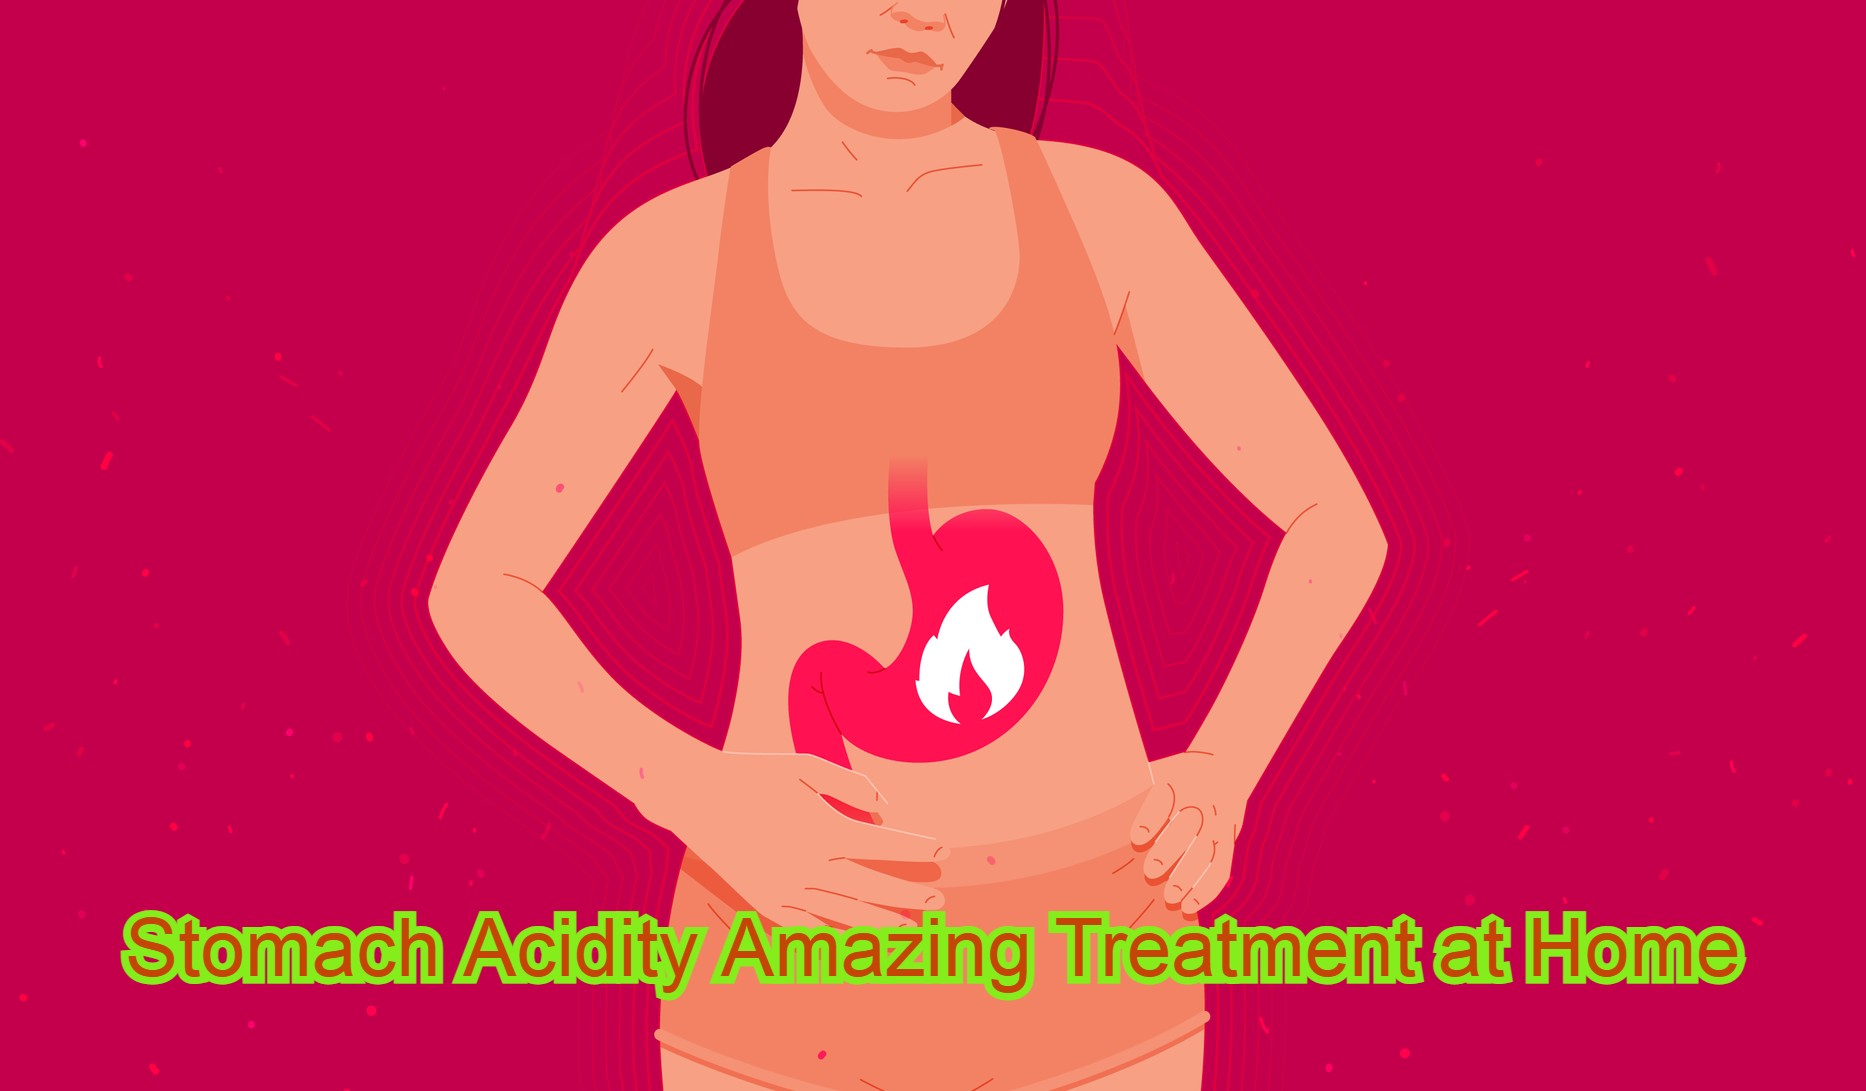 Stomach Acidity Amazing Treatment at Home